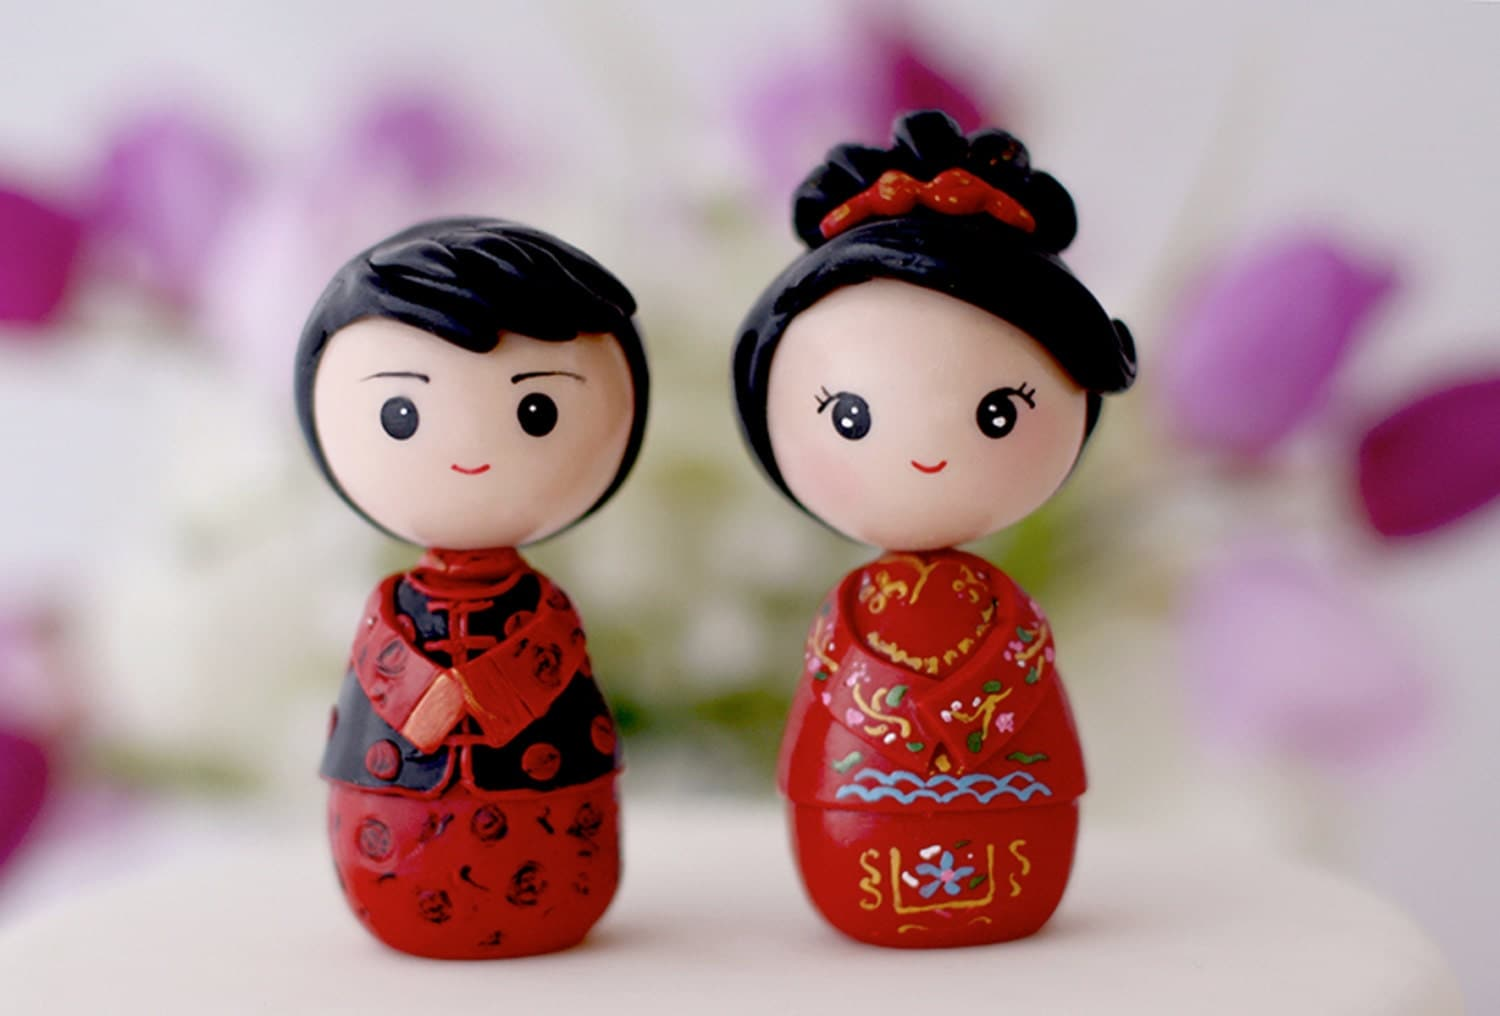 japanese wedding cake toppers and groom wedding cake topper kokeshi figurines 16588